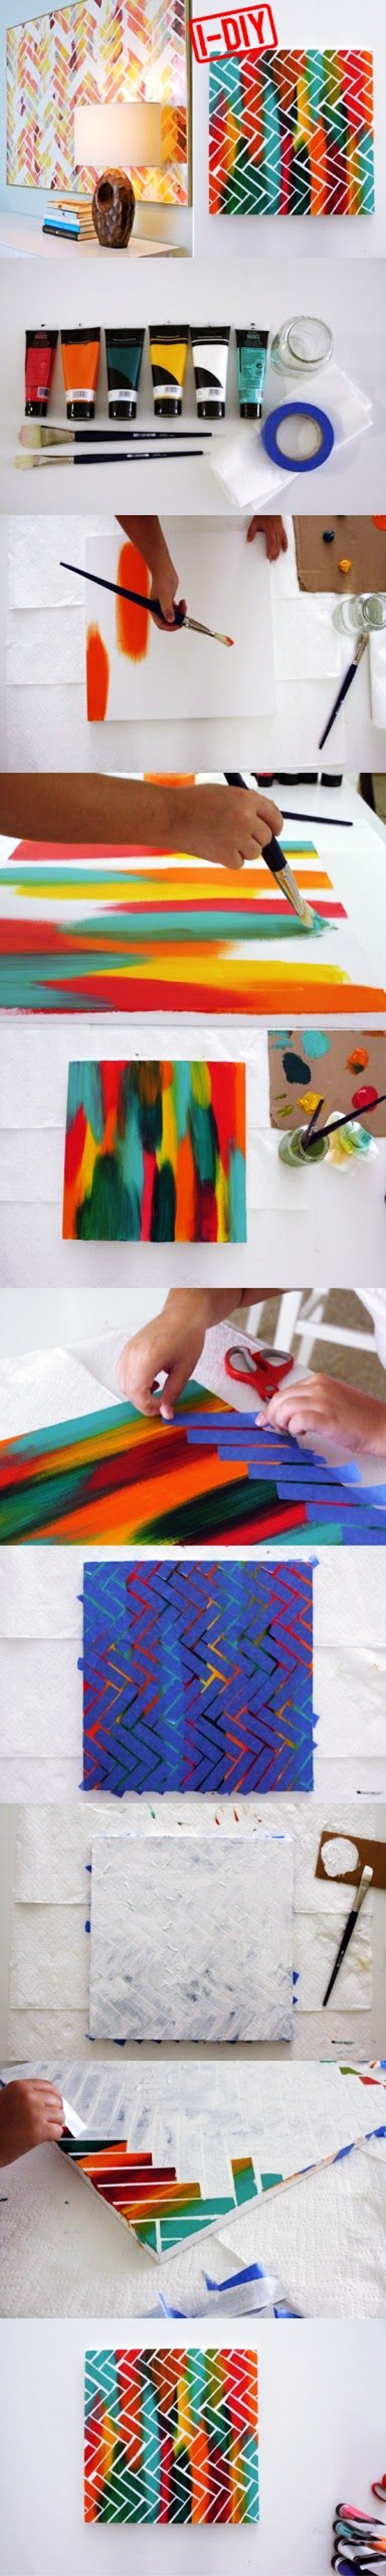 Quick-5-Minute-Painting-Projects